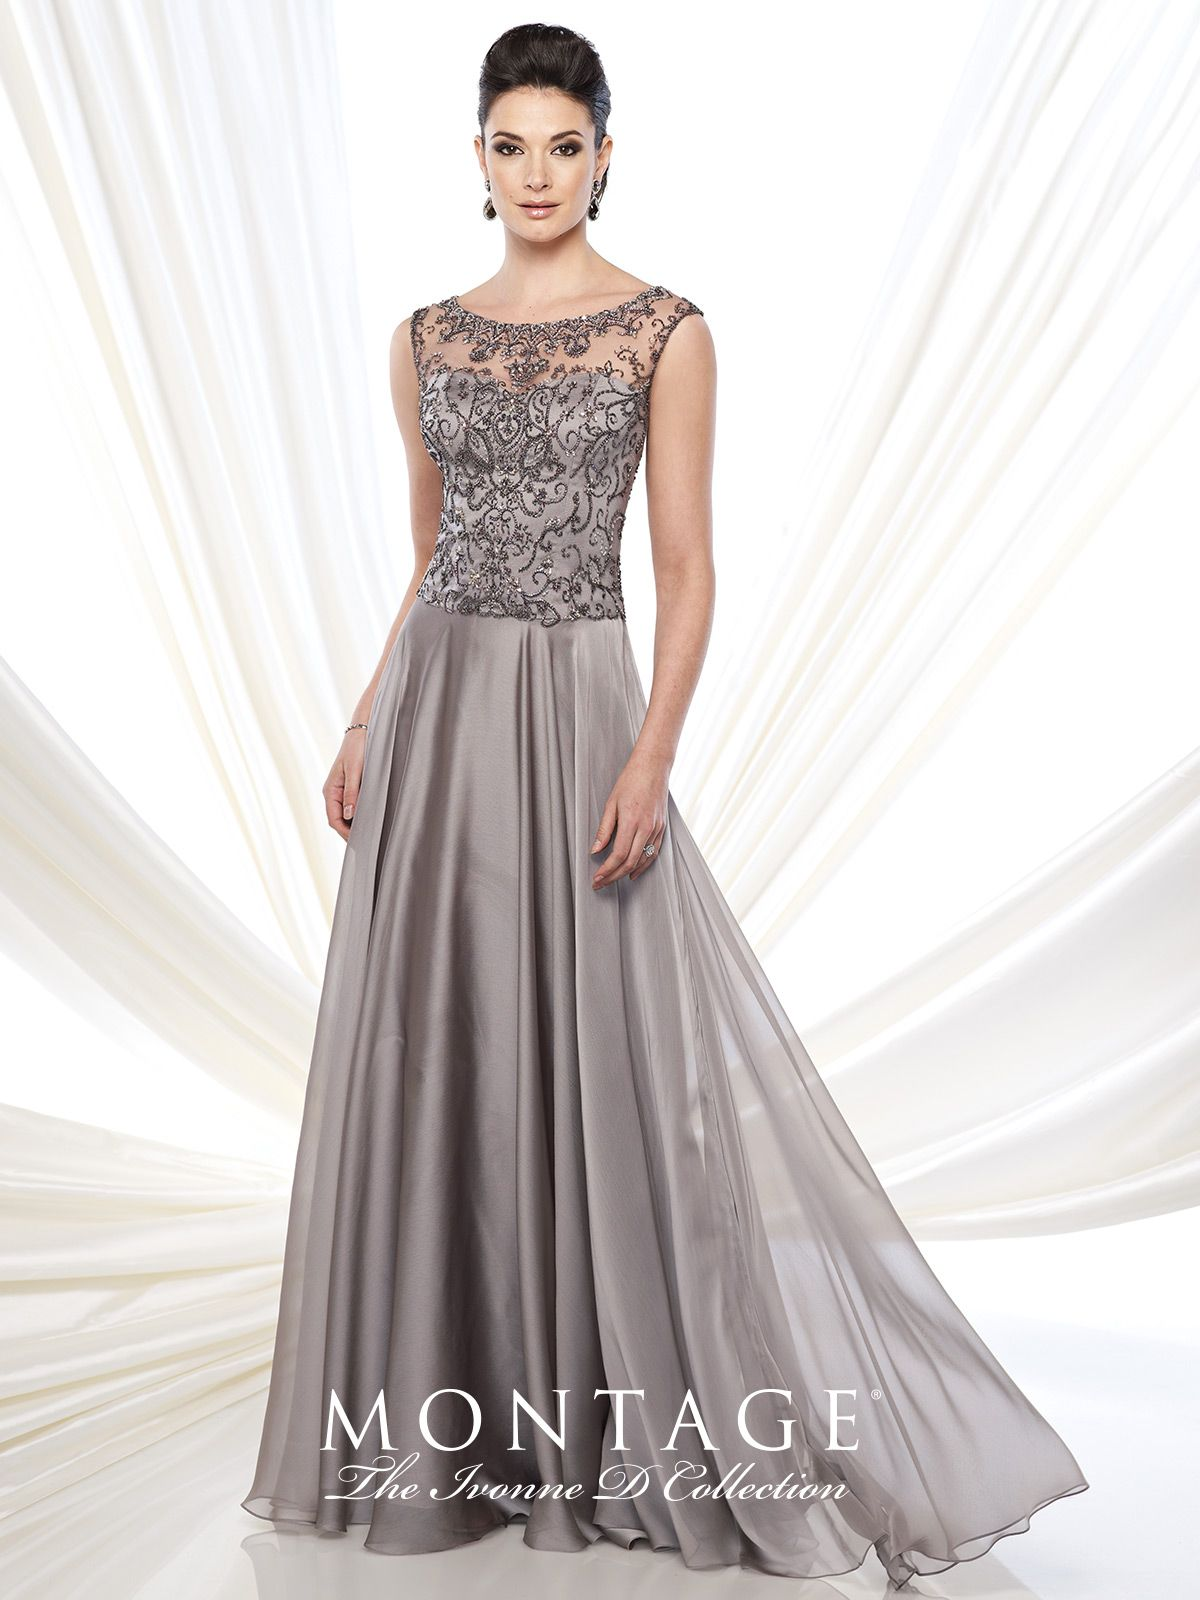 Ivonne D Exclusively for Mon Cheri - 215D12 - Two-tone chiffon full A-line  gown with hand-beaded slight cap sleeves and bateau neckline abe5ed356